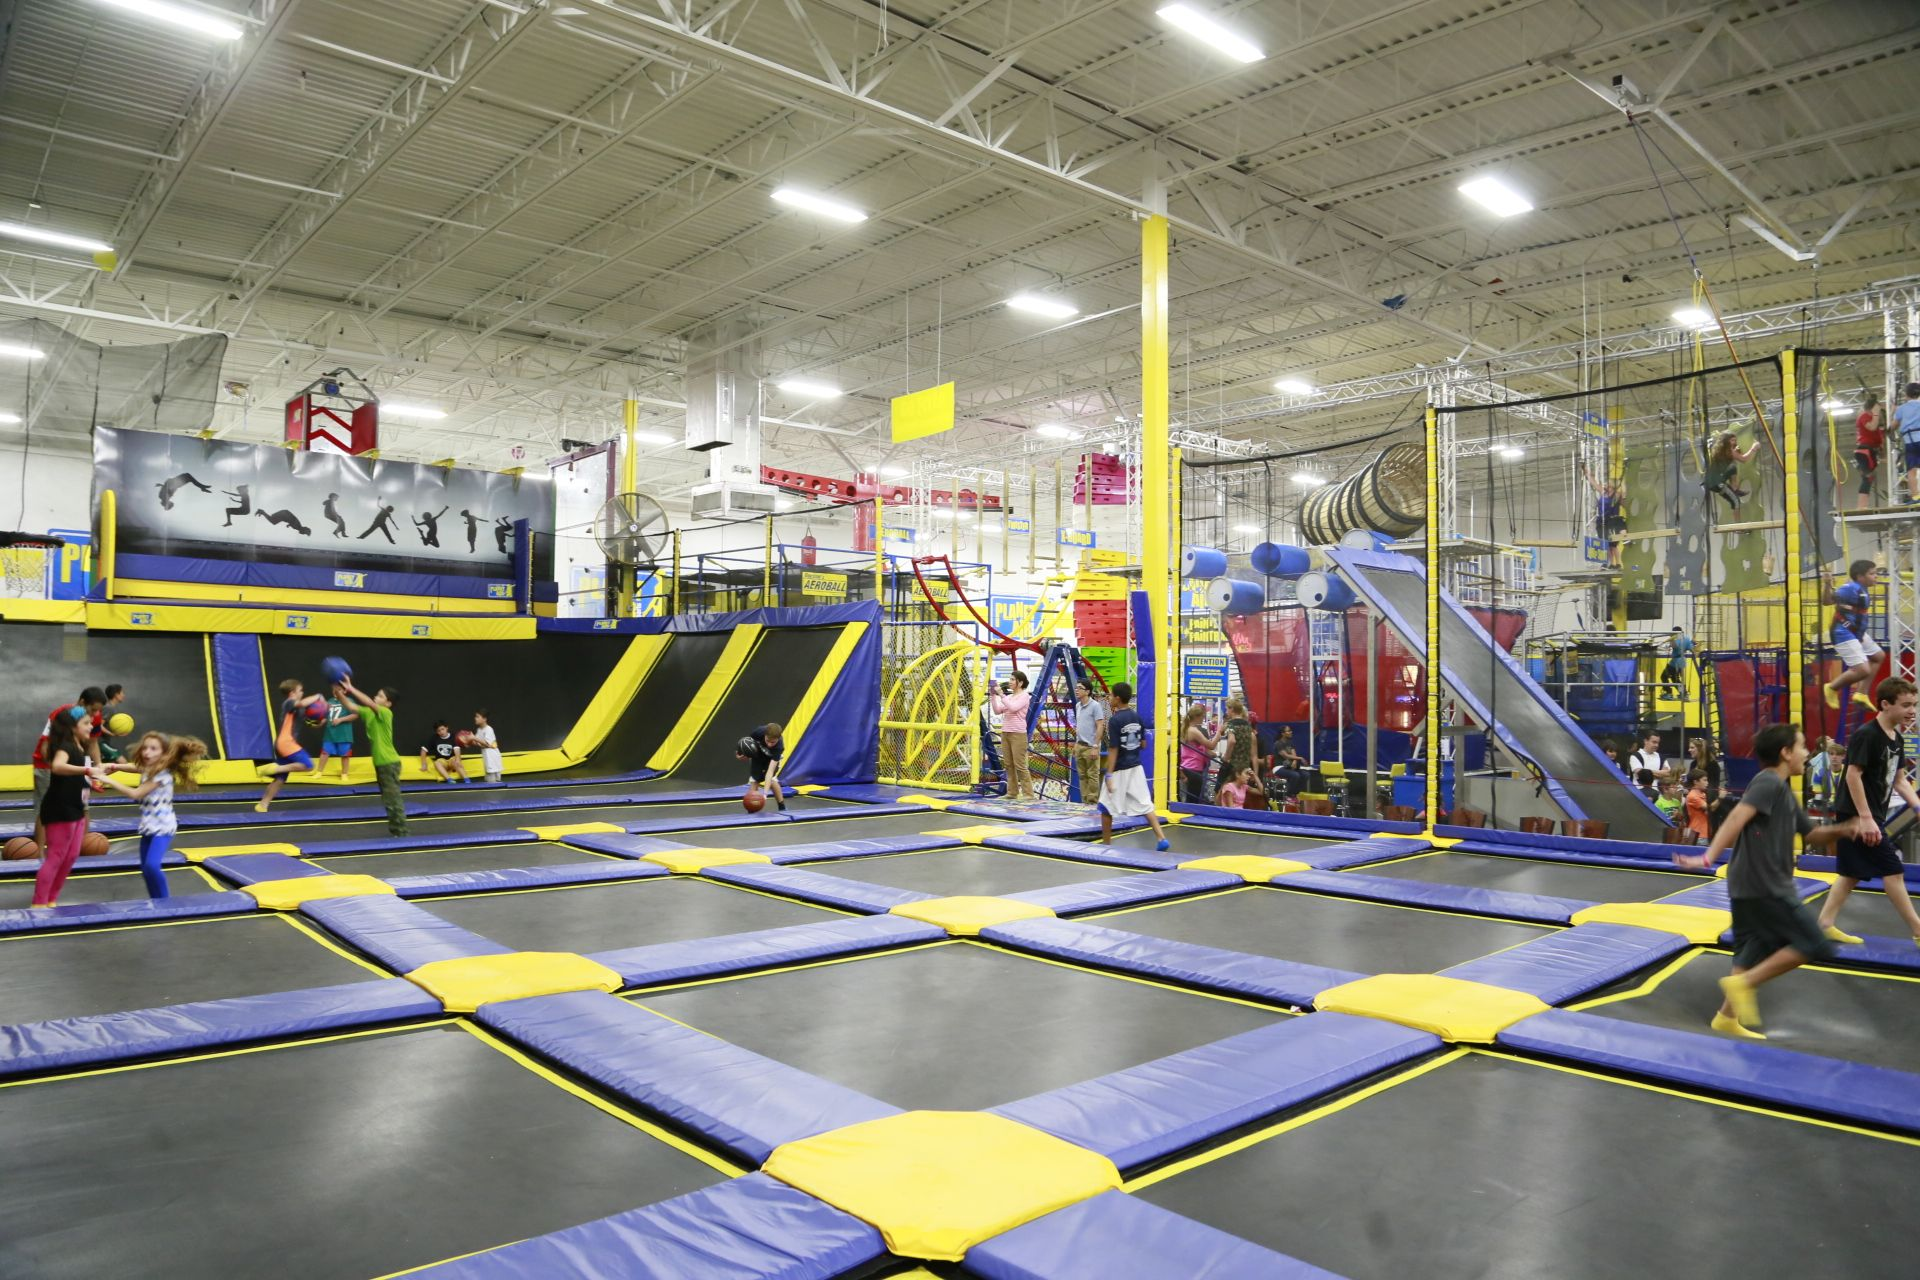 Trampoline room in house - An Incredible Over 6 000 Square Foot Indoor Trampoline Park Including 3 Basketball Hoops To Dunk